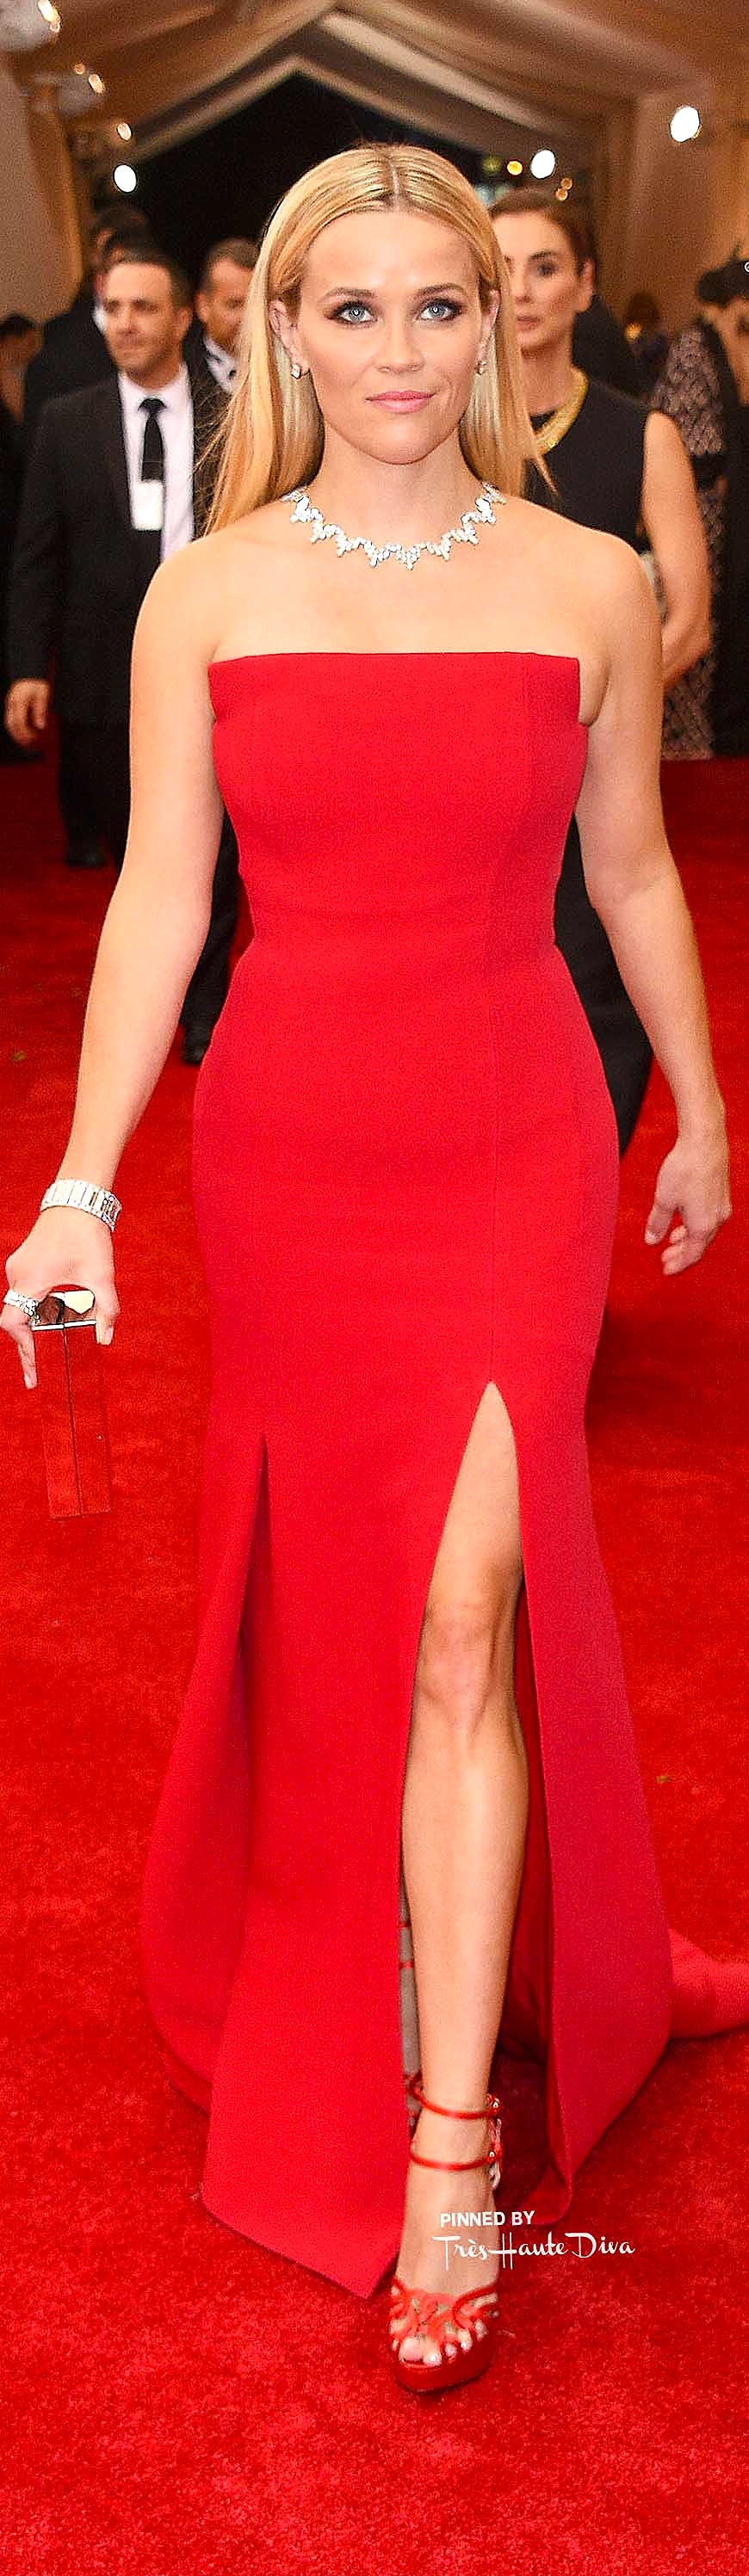 Reese Witherspoon in Jason Wu & Tiffany Jewelry Getty Images/ Larry Busacca